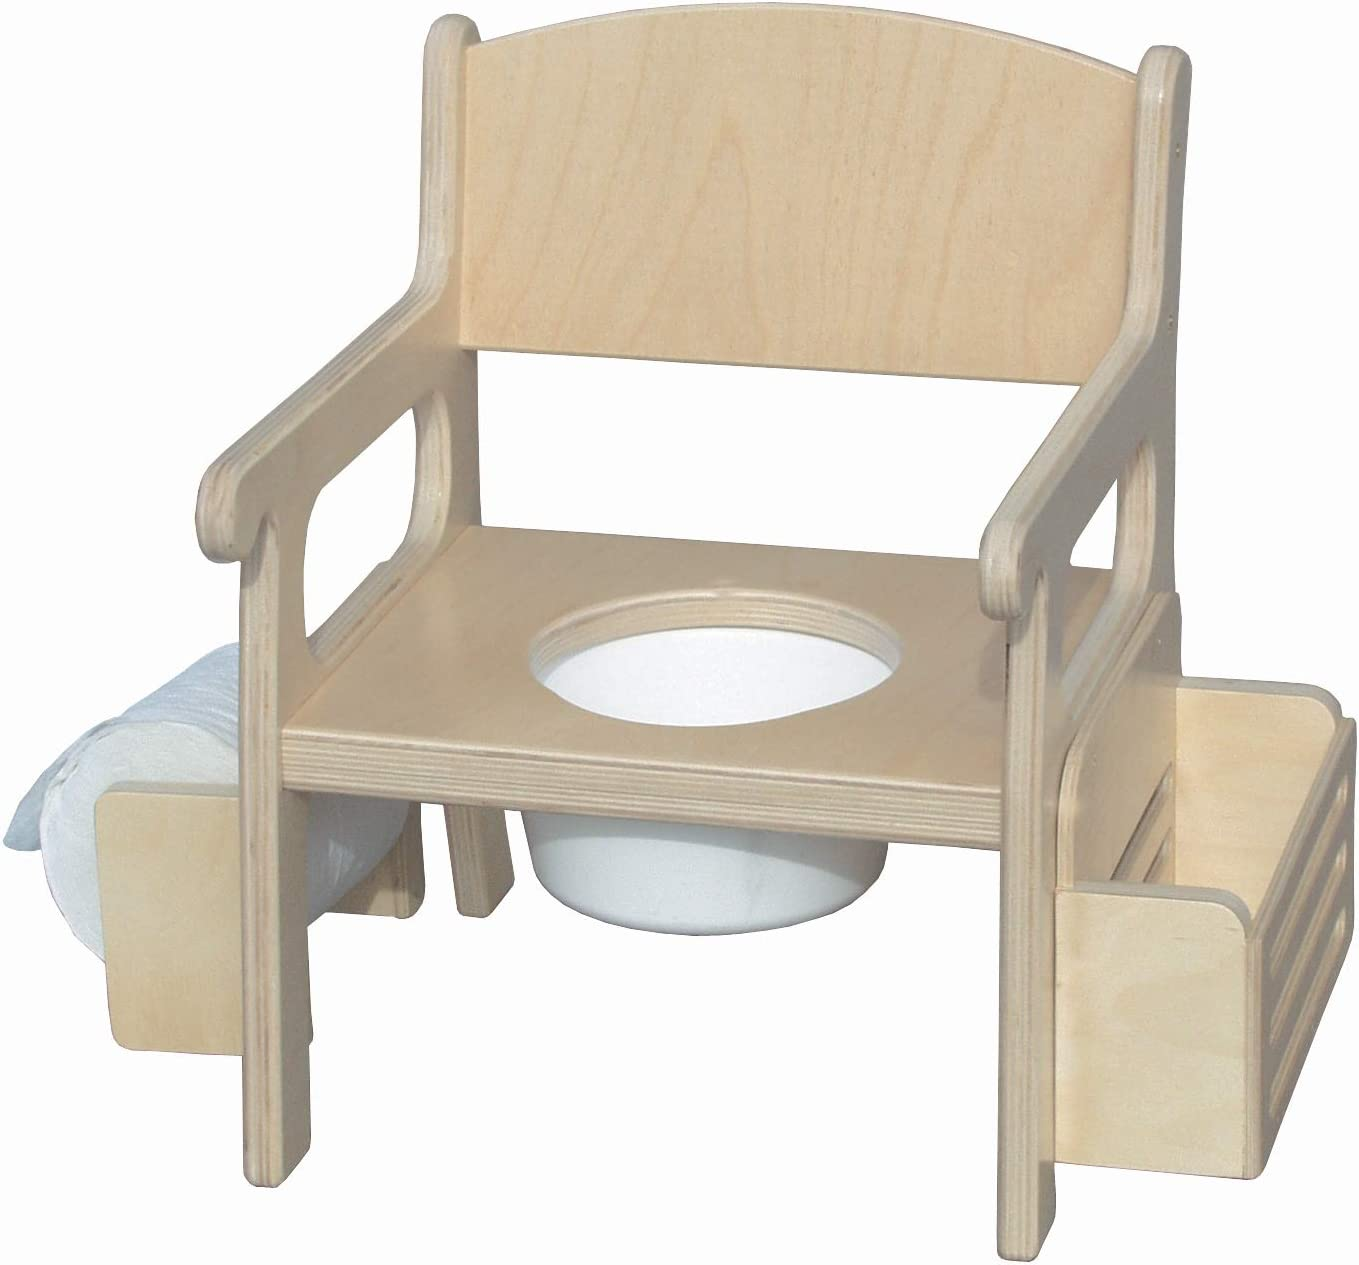 Little Colorado Potty Chair with Accessories-Lavender